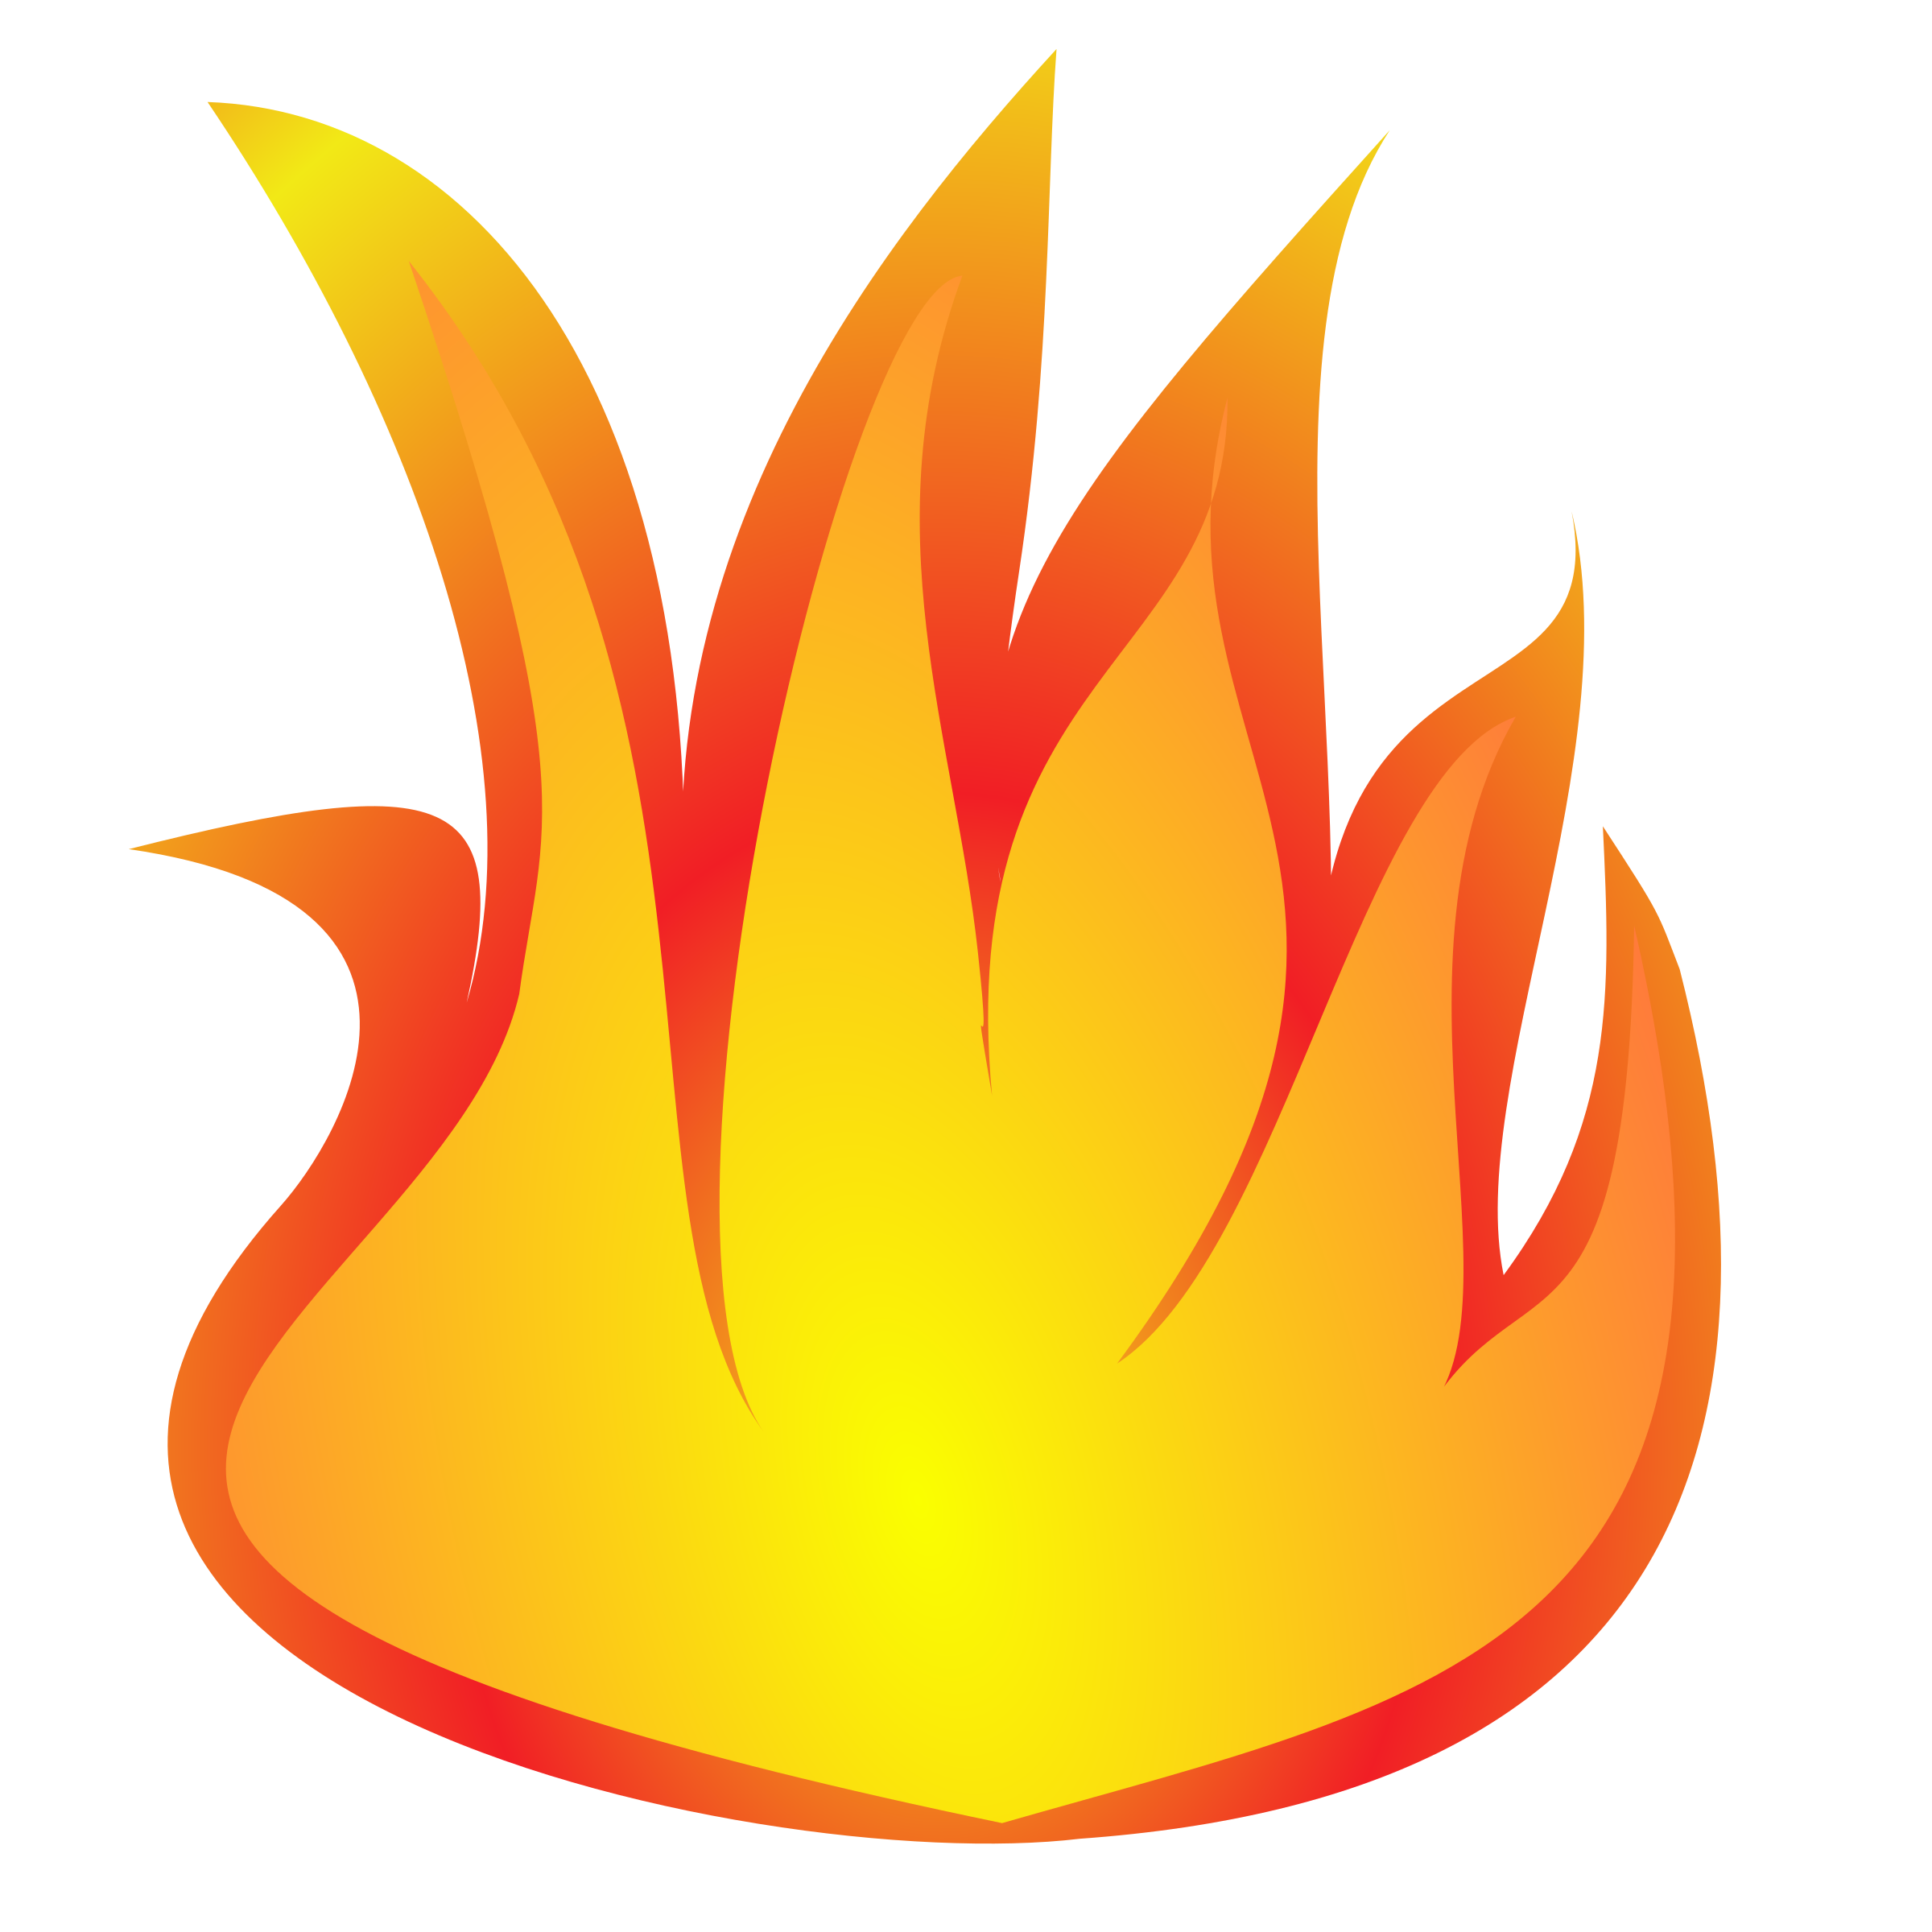 Fireplace Fire Clipart Free Clipart Imag-Fireplace fire clipart free clipart image-13